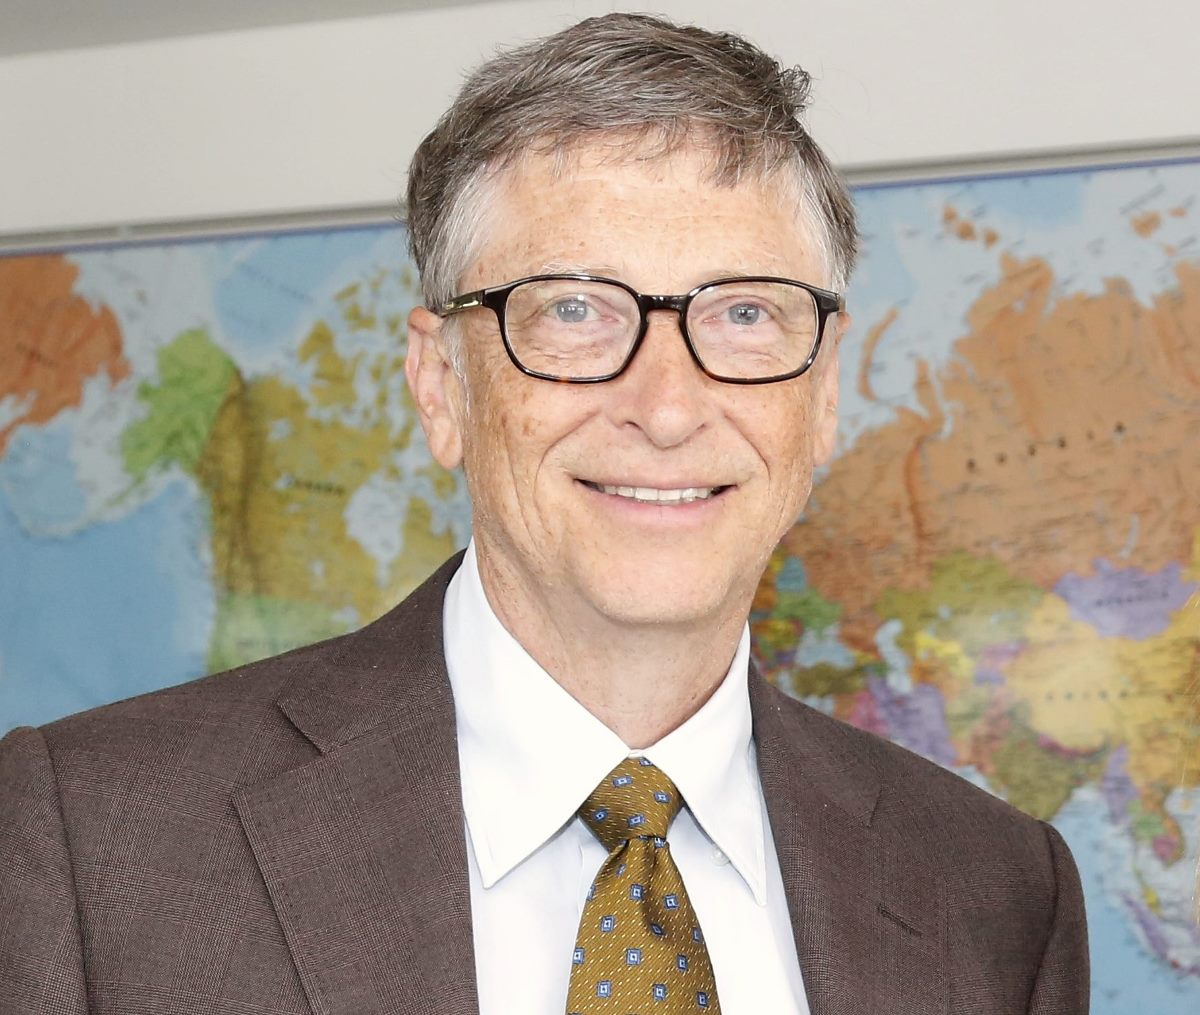 Happy Birthday, <b>Bill Gates</b> - BillGatesWikiped